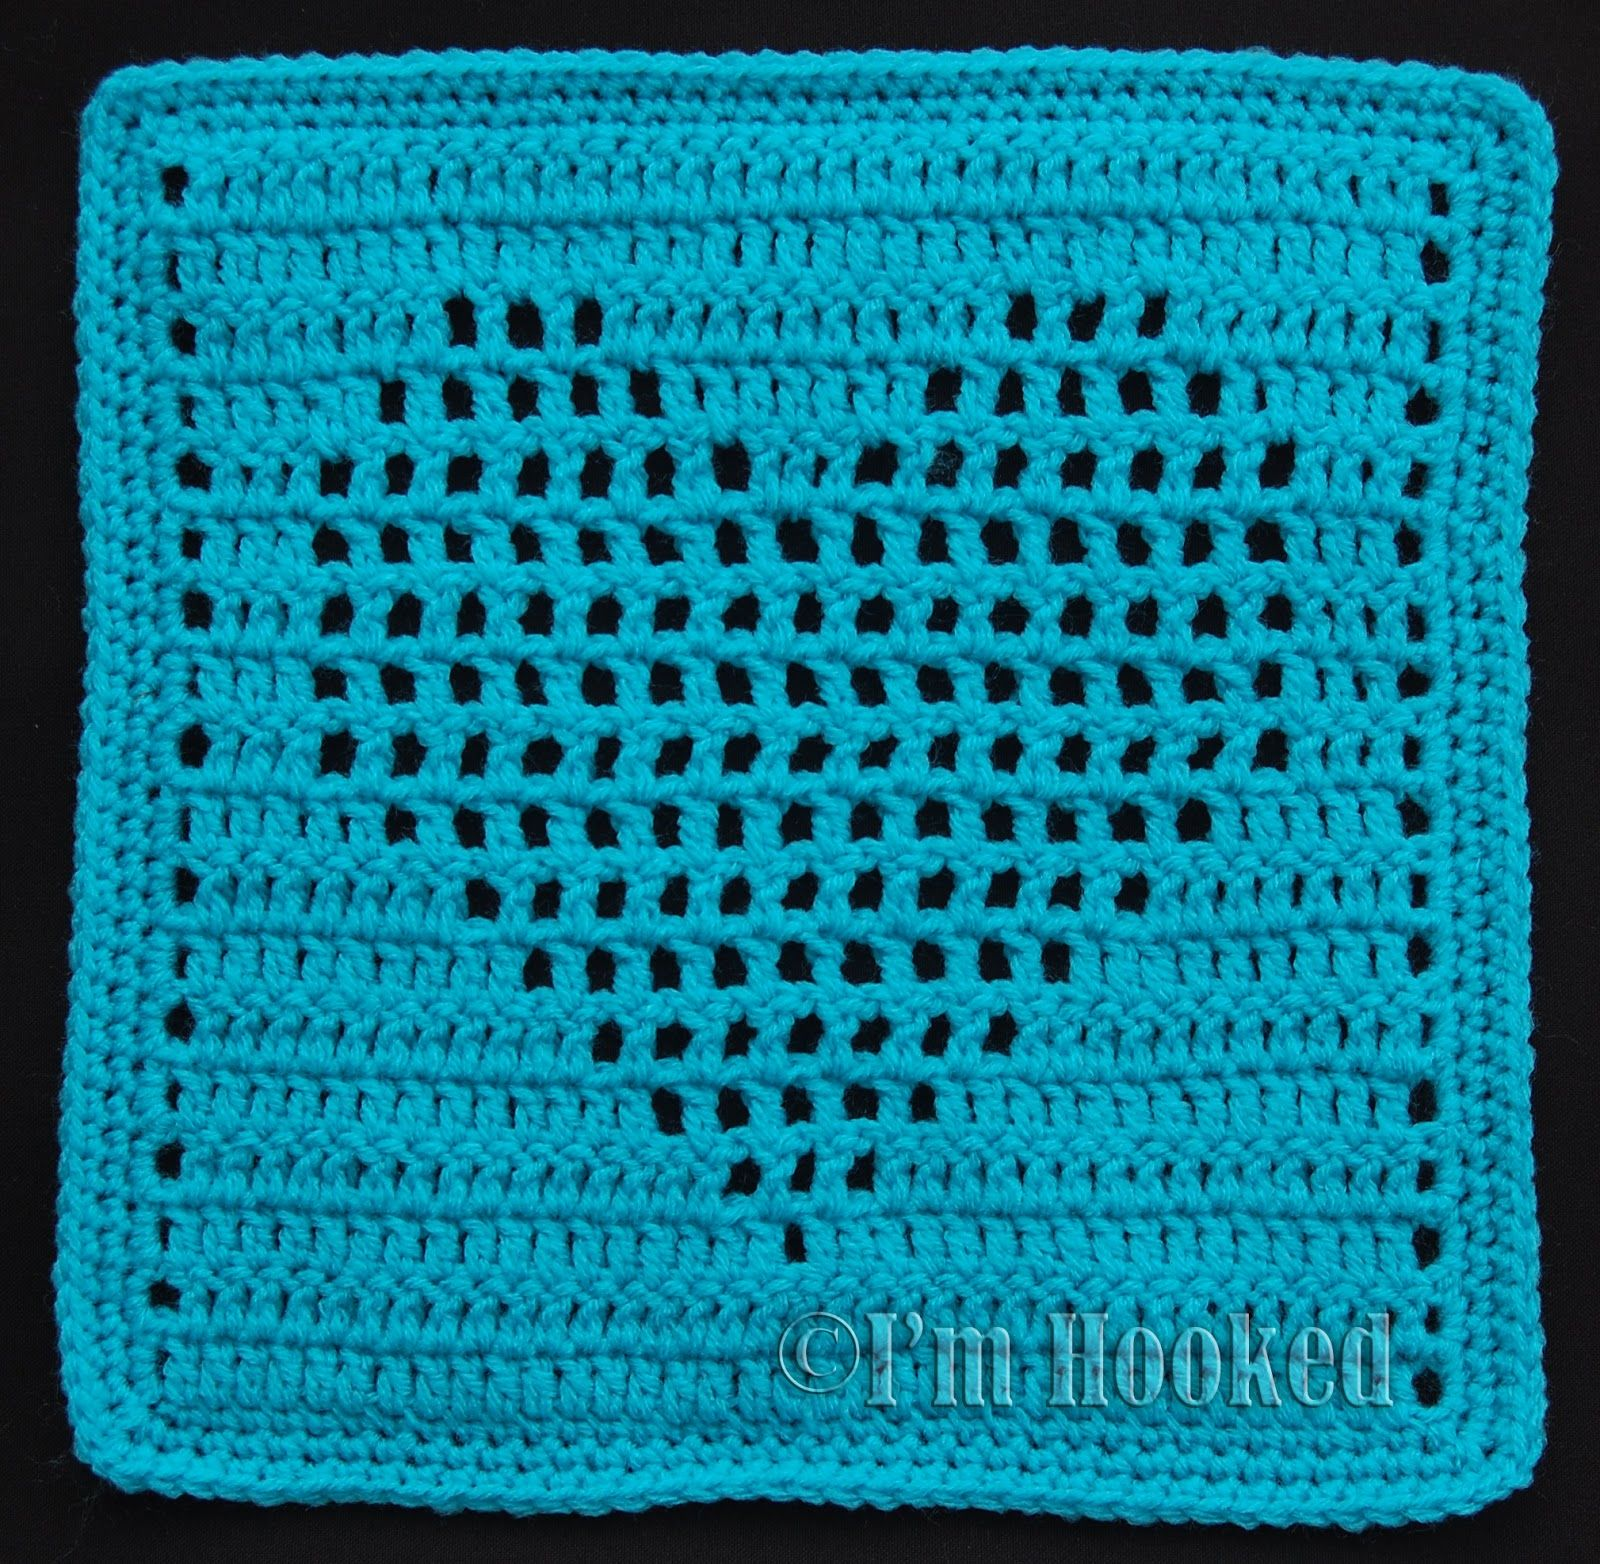 Heart in square maybe modify this somehow to make a kitchen free crochet pattern heart filet block 2 pattern also available with solid heart free crochet patterns bankloansurffo Image collections